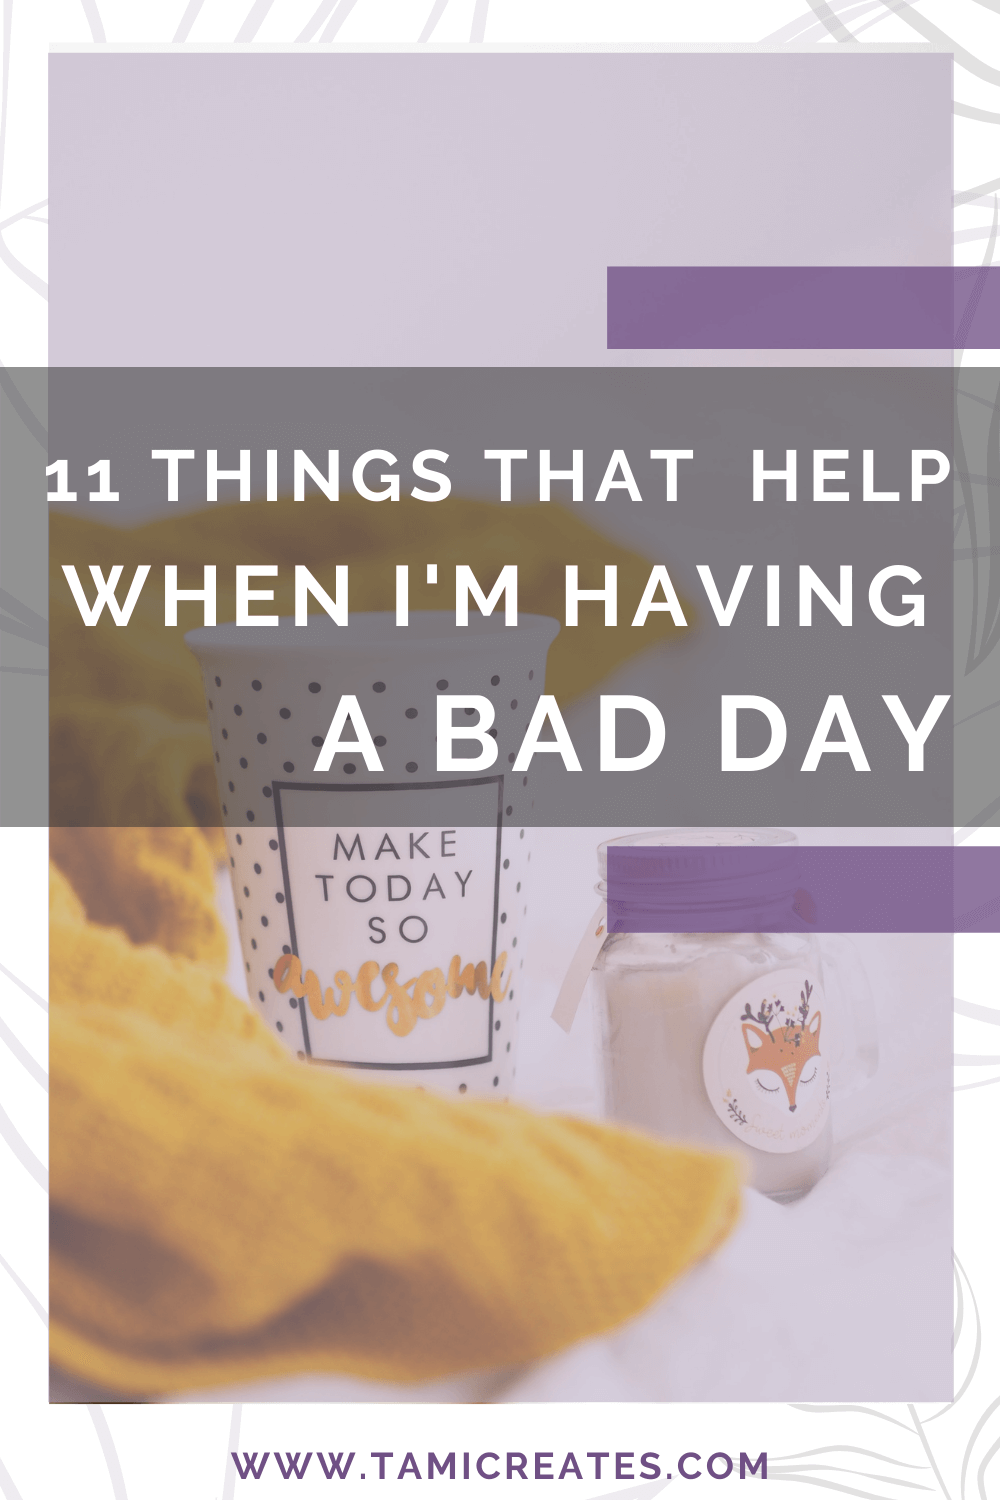 Bad days happen to everyone. So, today I thought I'd share 11 things that help when I'm having a bad day!